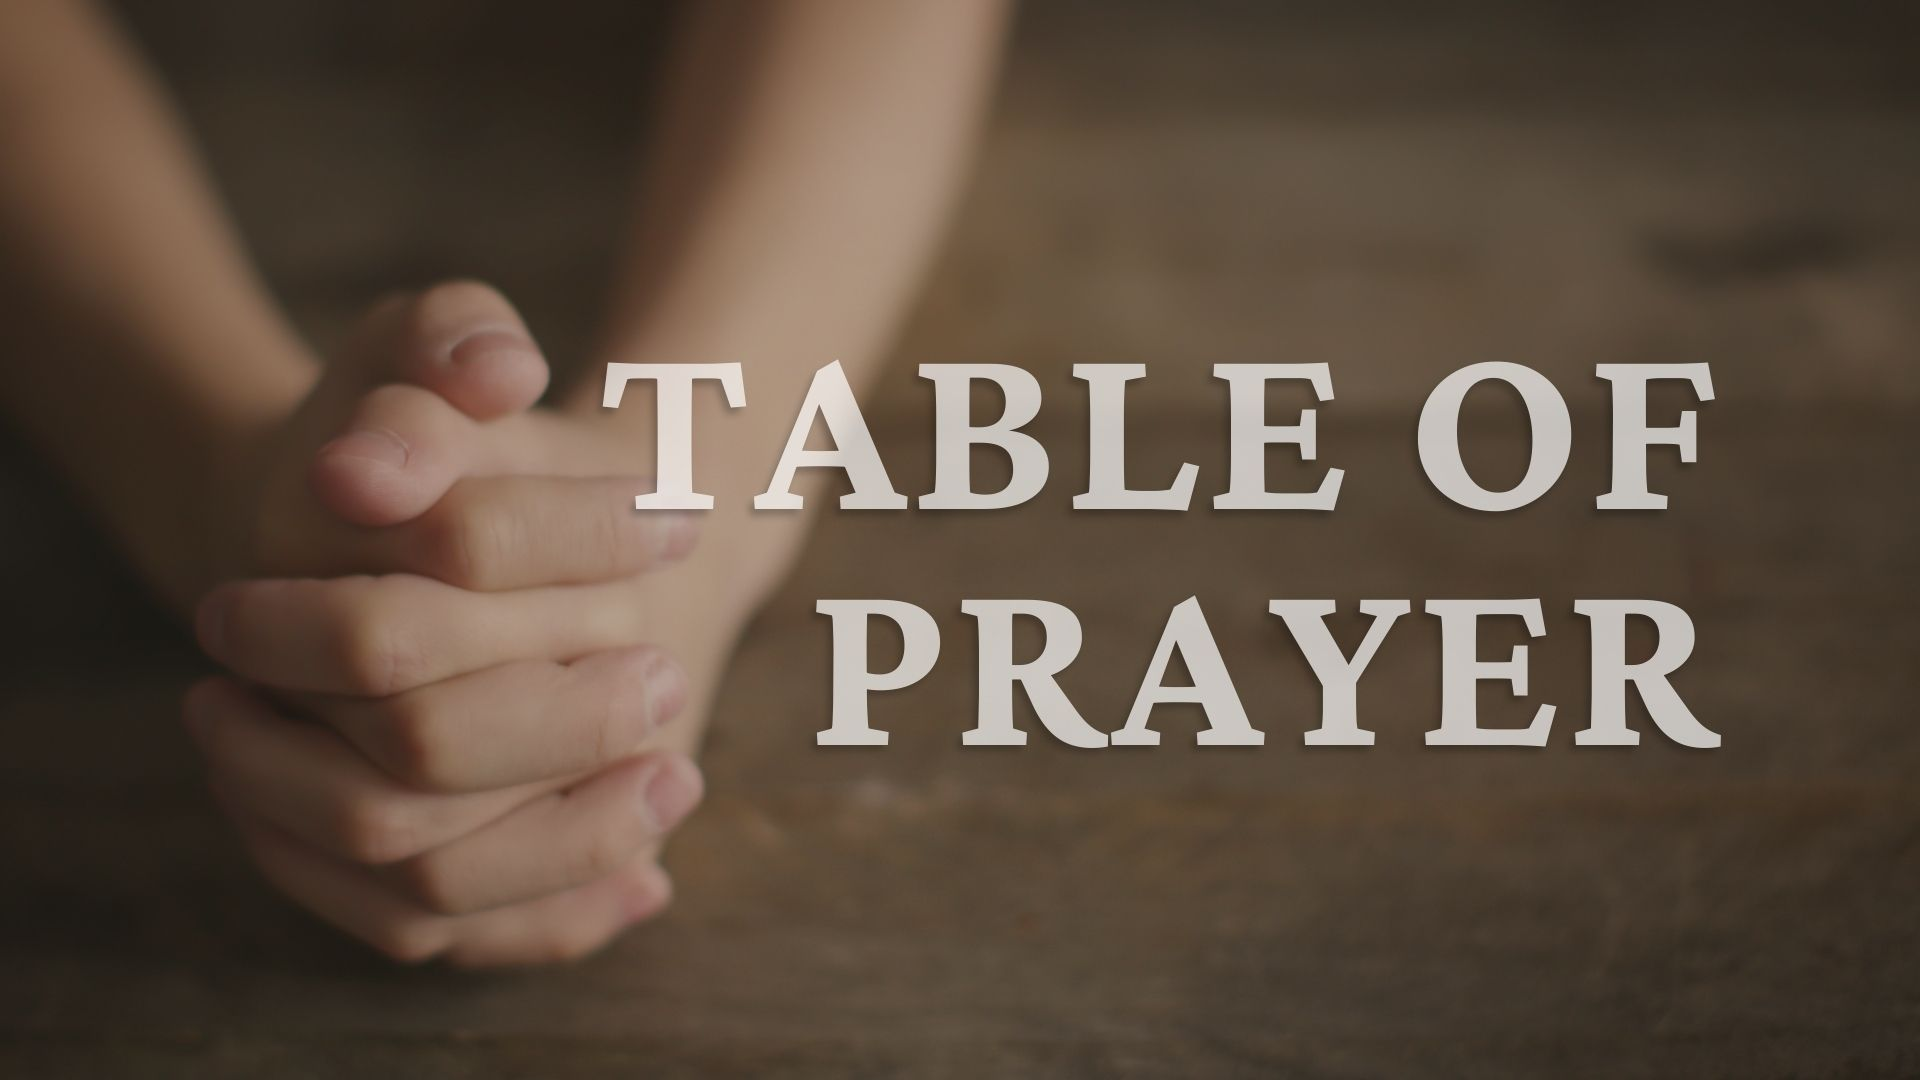 Table of Prayer image